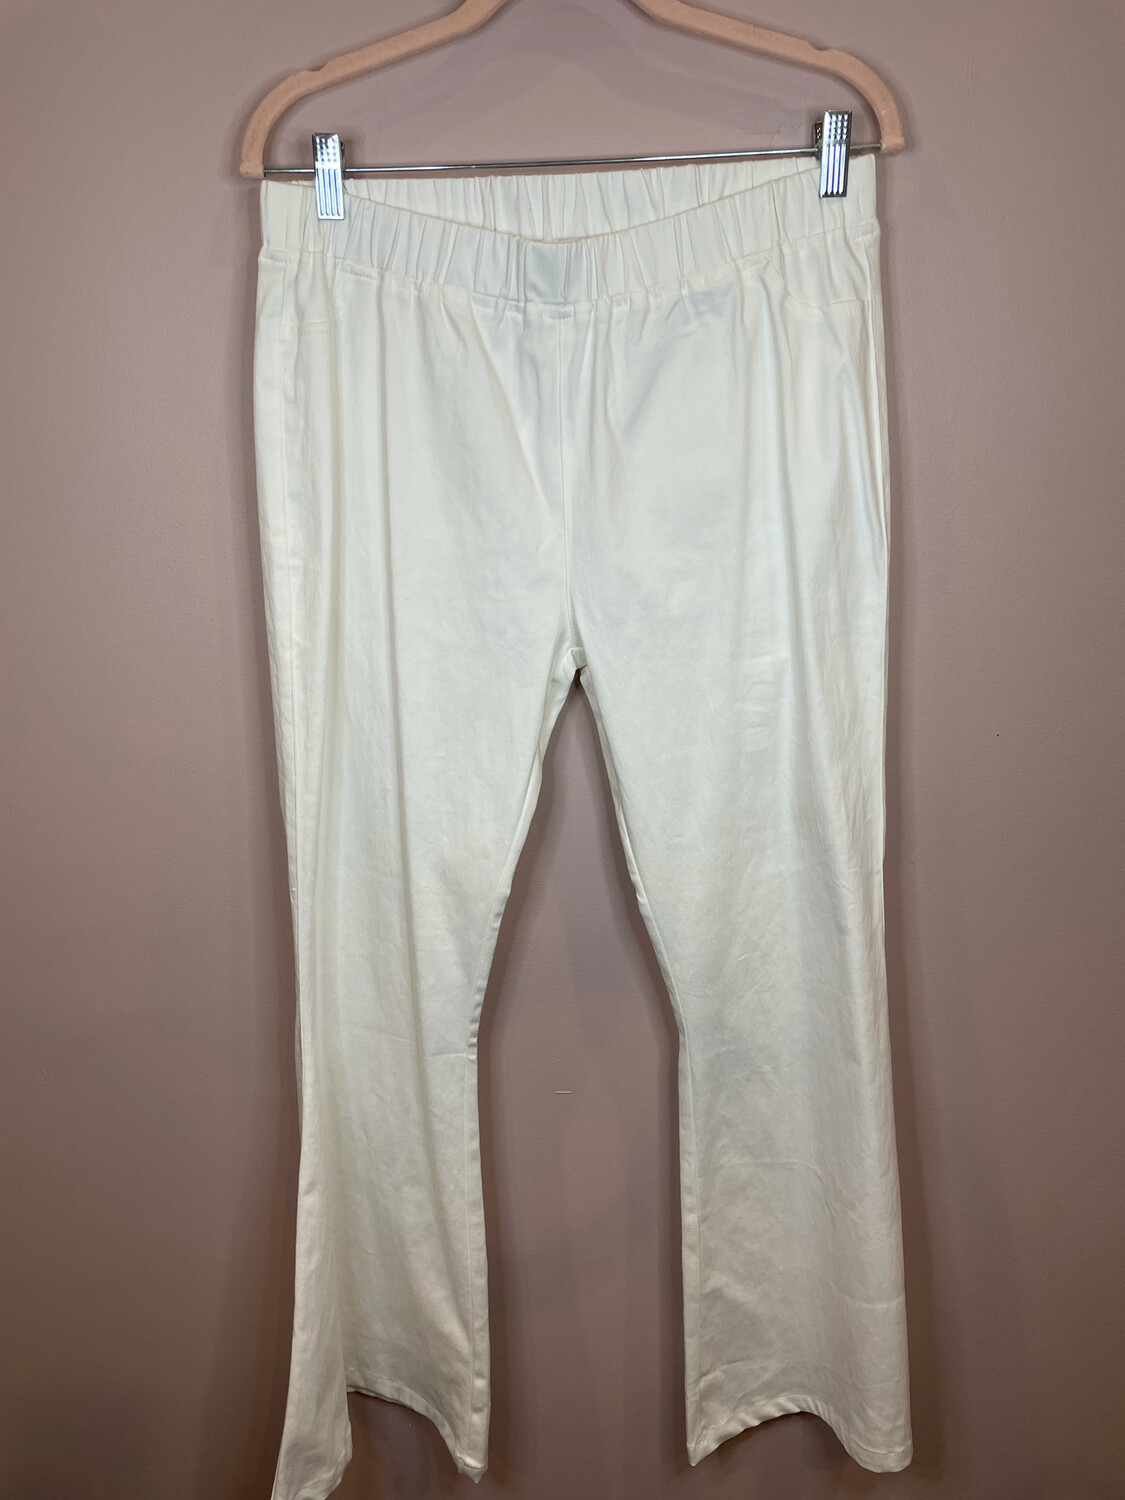 Umgee White Flare Pull Up Pants - 1X